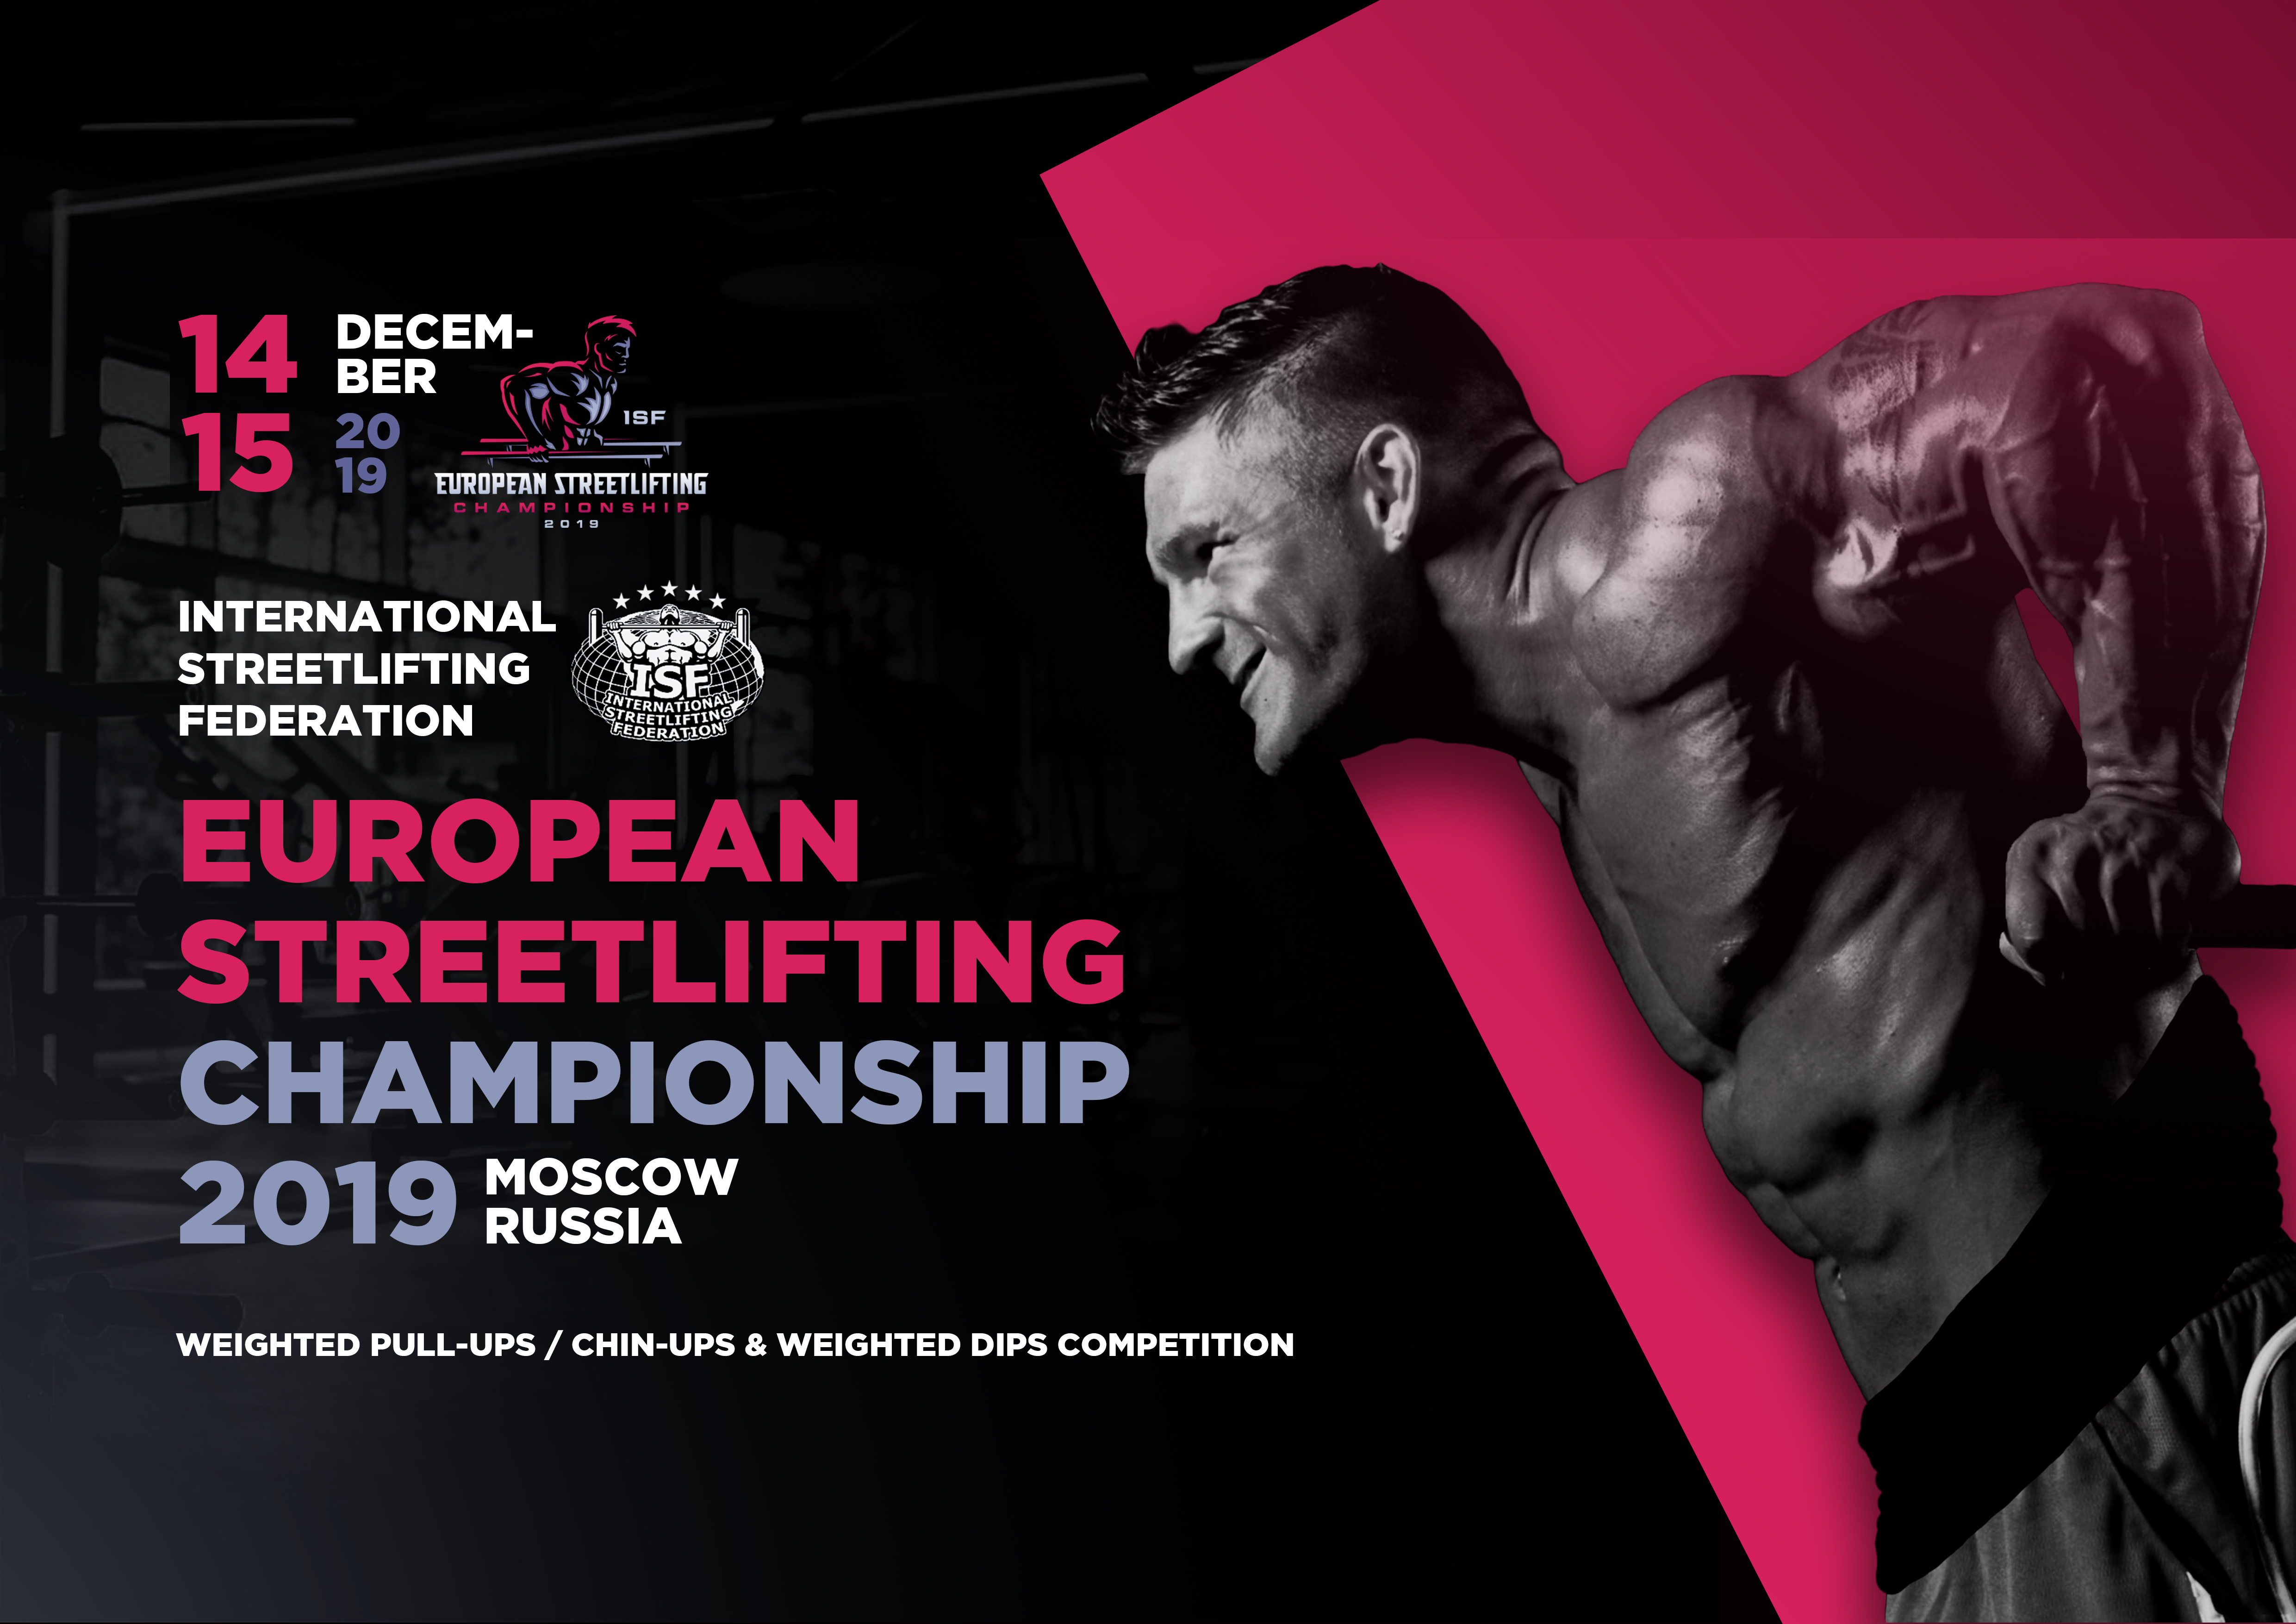 December 14-15, 2019 – EUROPEAN STREETLIFTING CHAMPIONSHIP – ISF (+Weighted Pull-Ups & Dips)